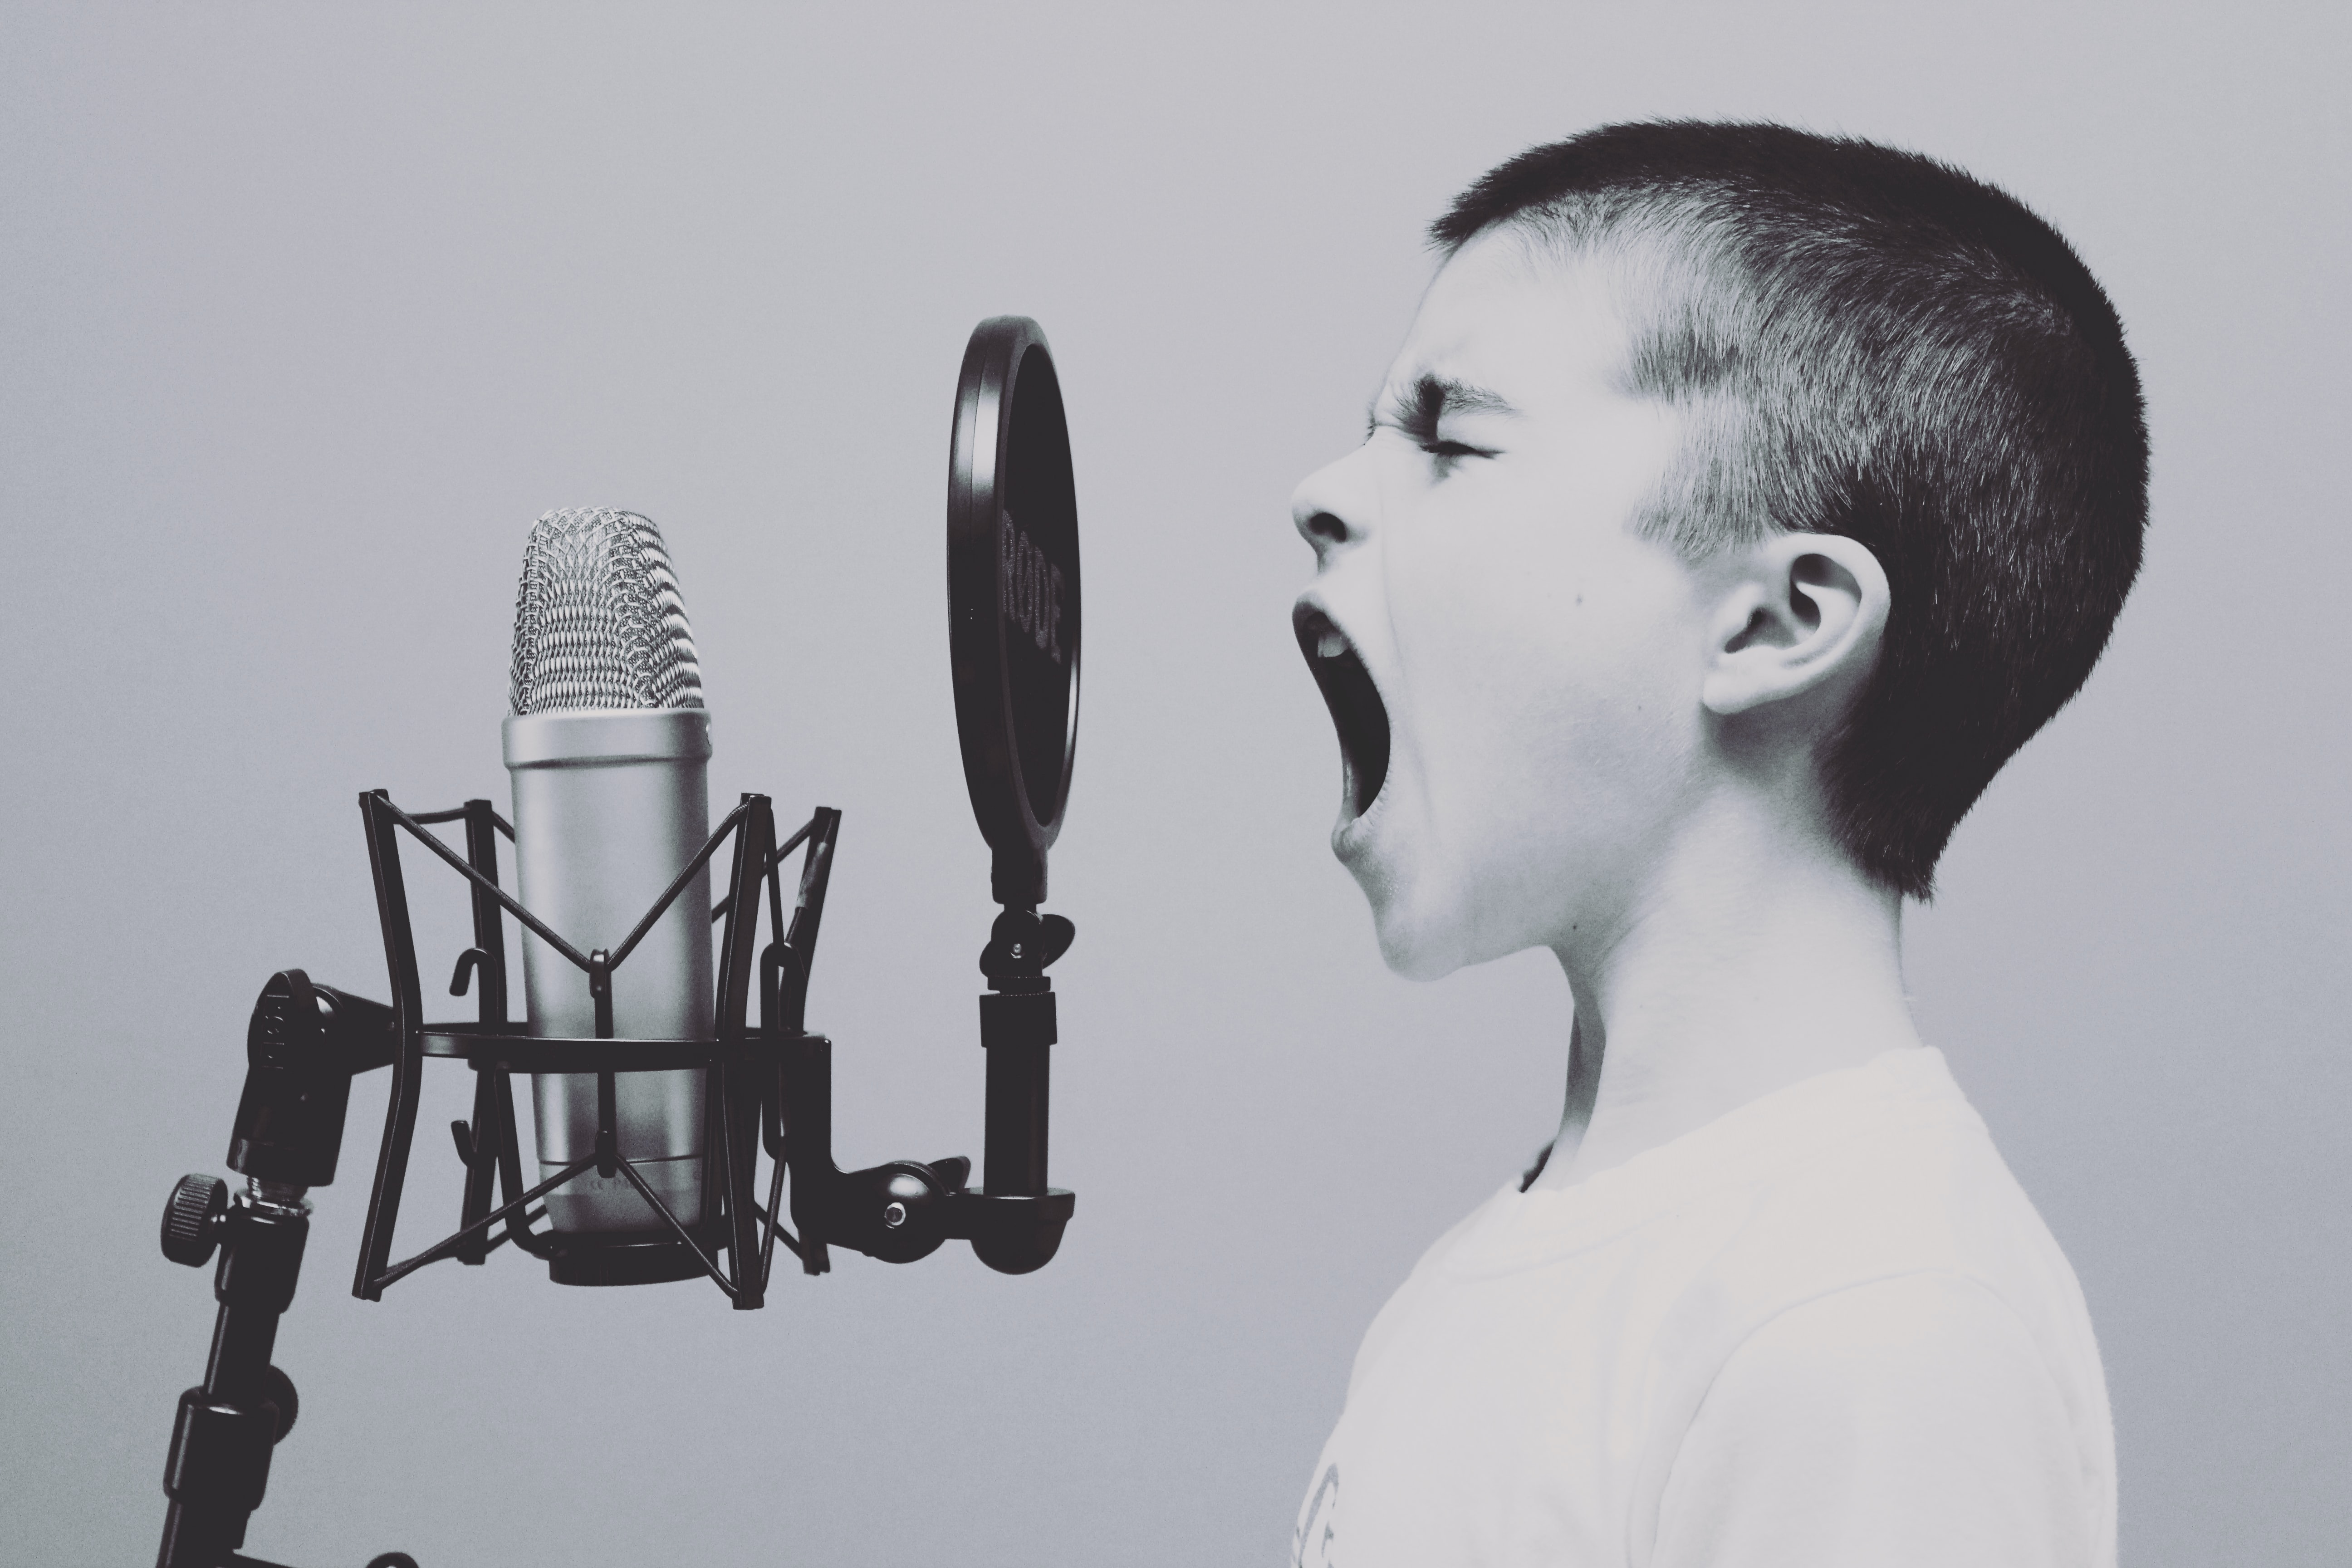 Young boy shouting into a recording microphone